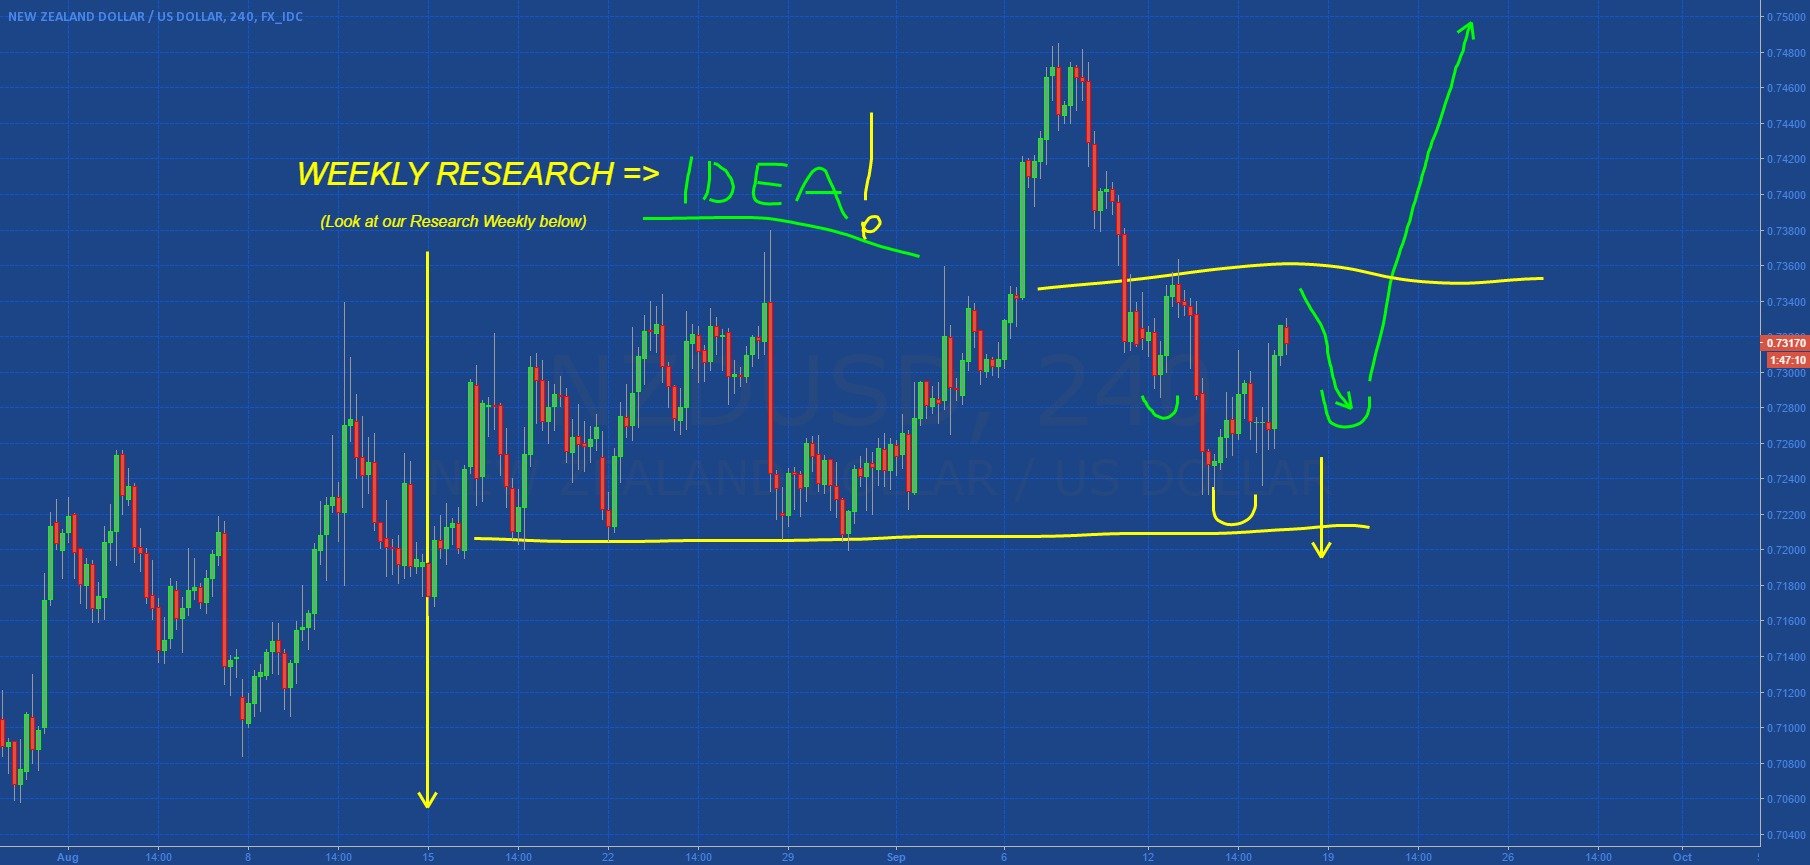 NZDUSD: SIMPLE IDEA WITH WEEKLY RESEARCH